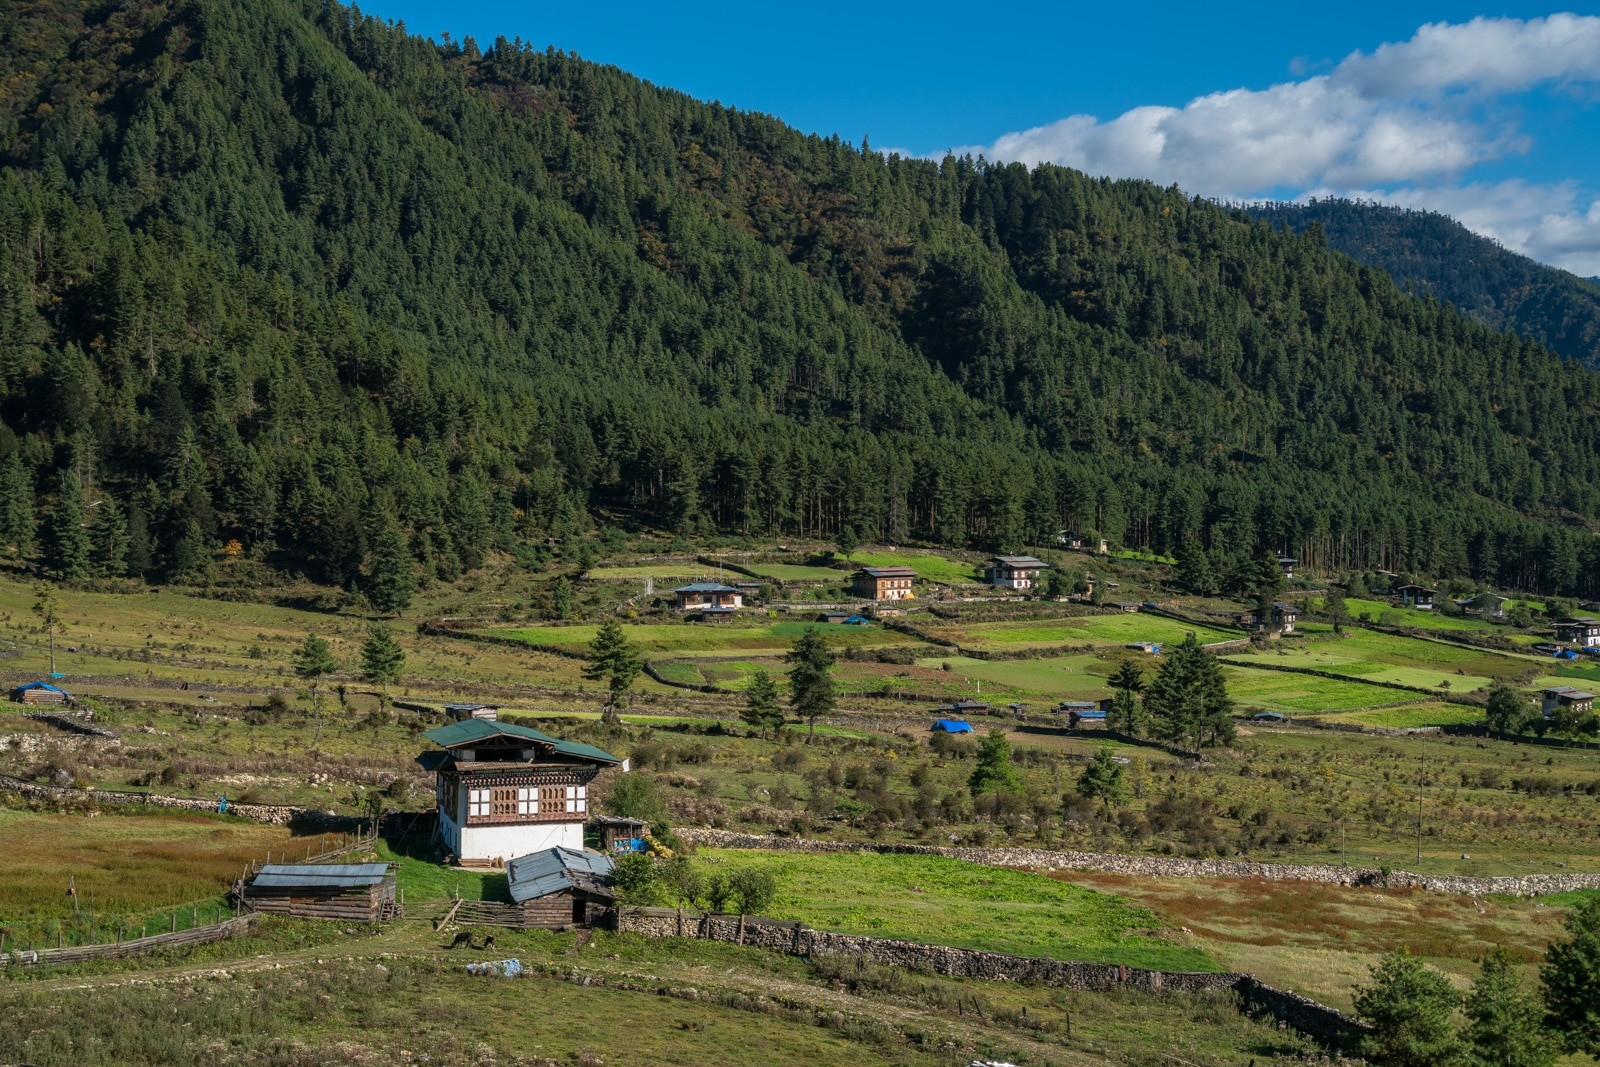 Stunning photos of Bhutan - Village houses in Phobjikha Valley AKA Gangtey - Lost With Purpose travel blog